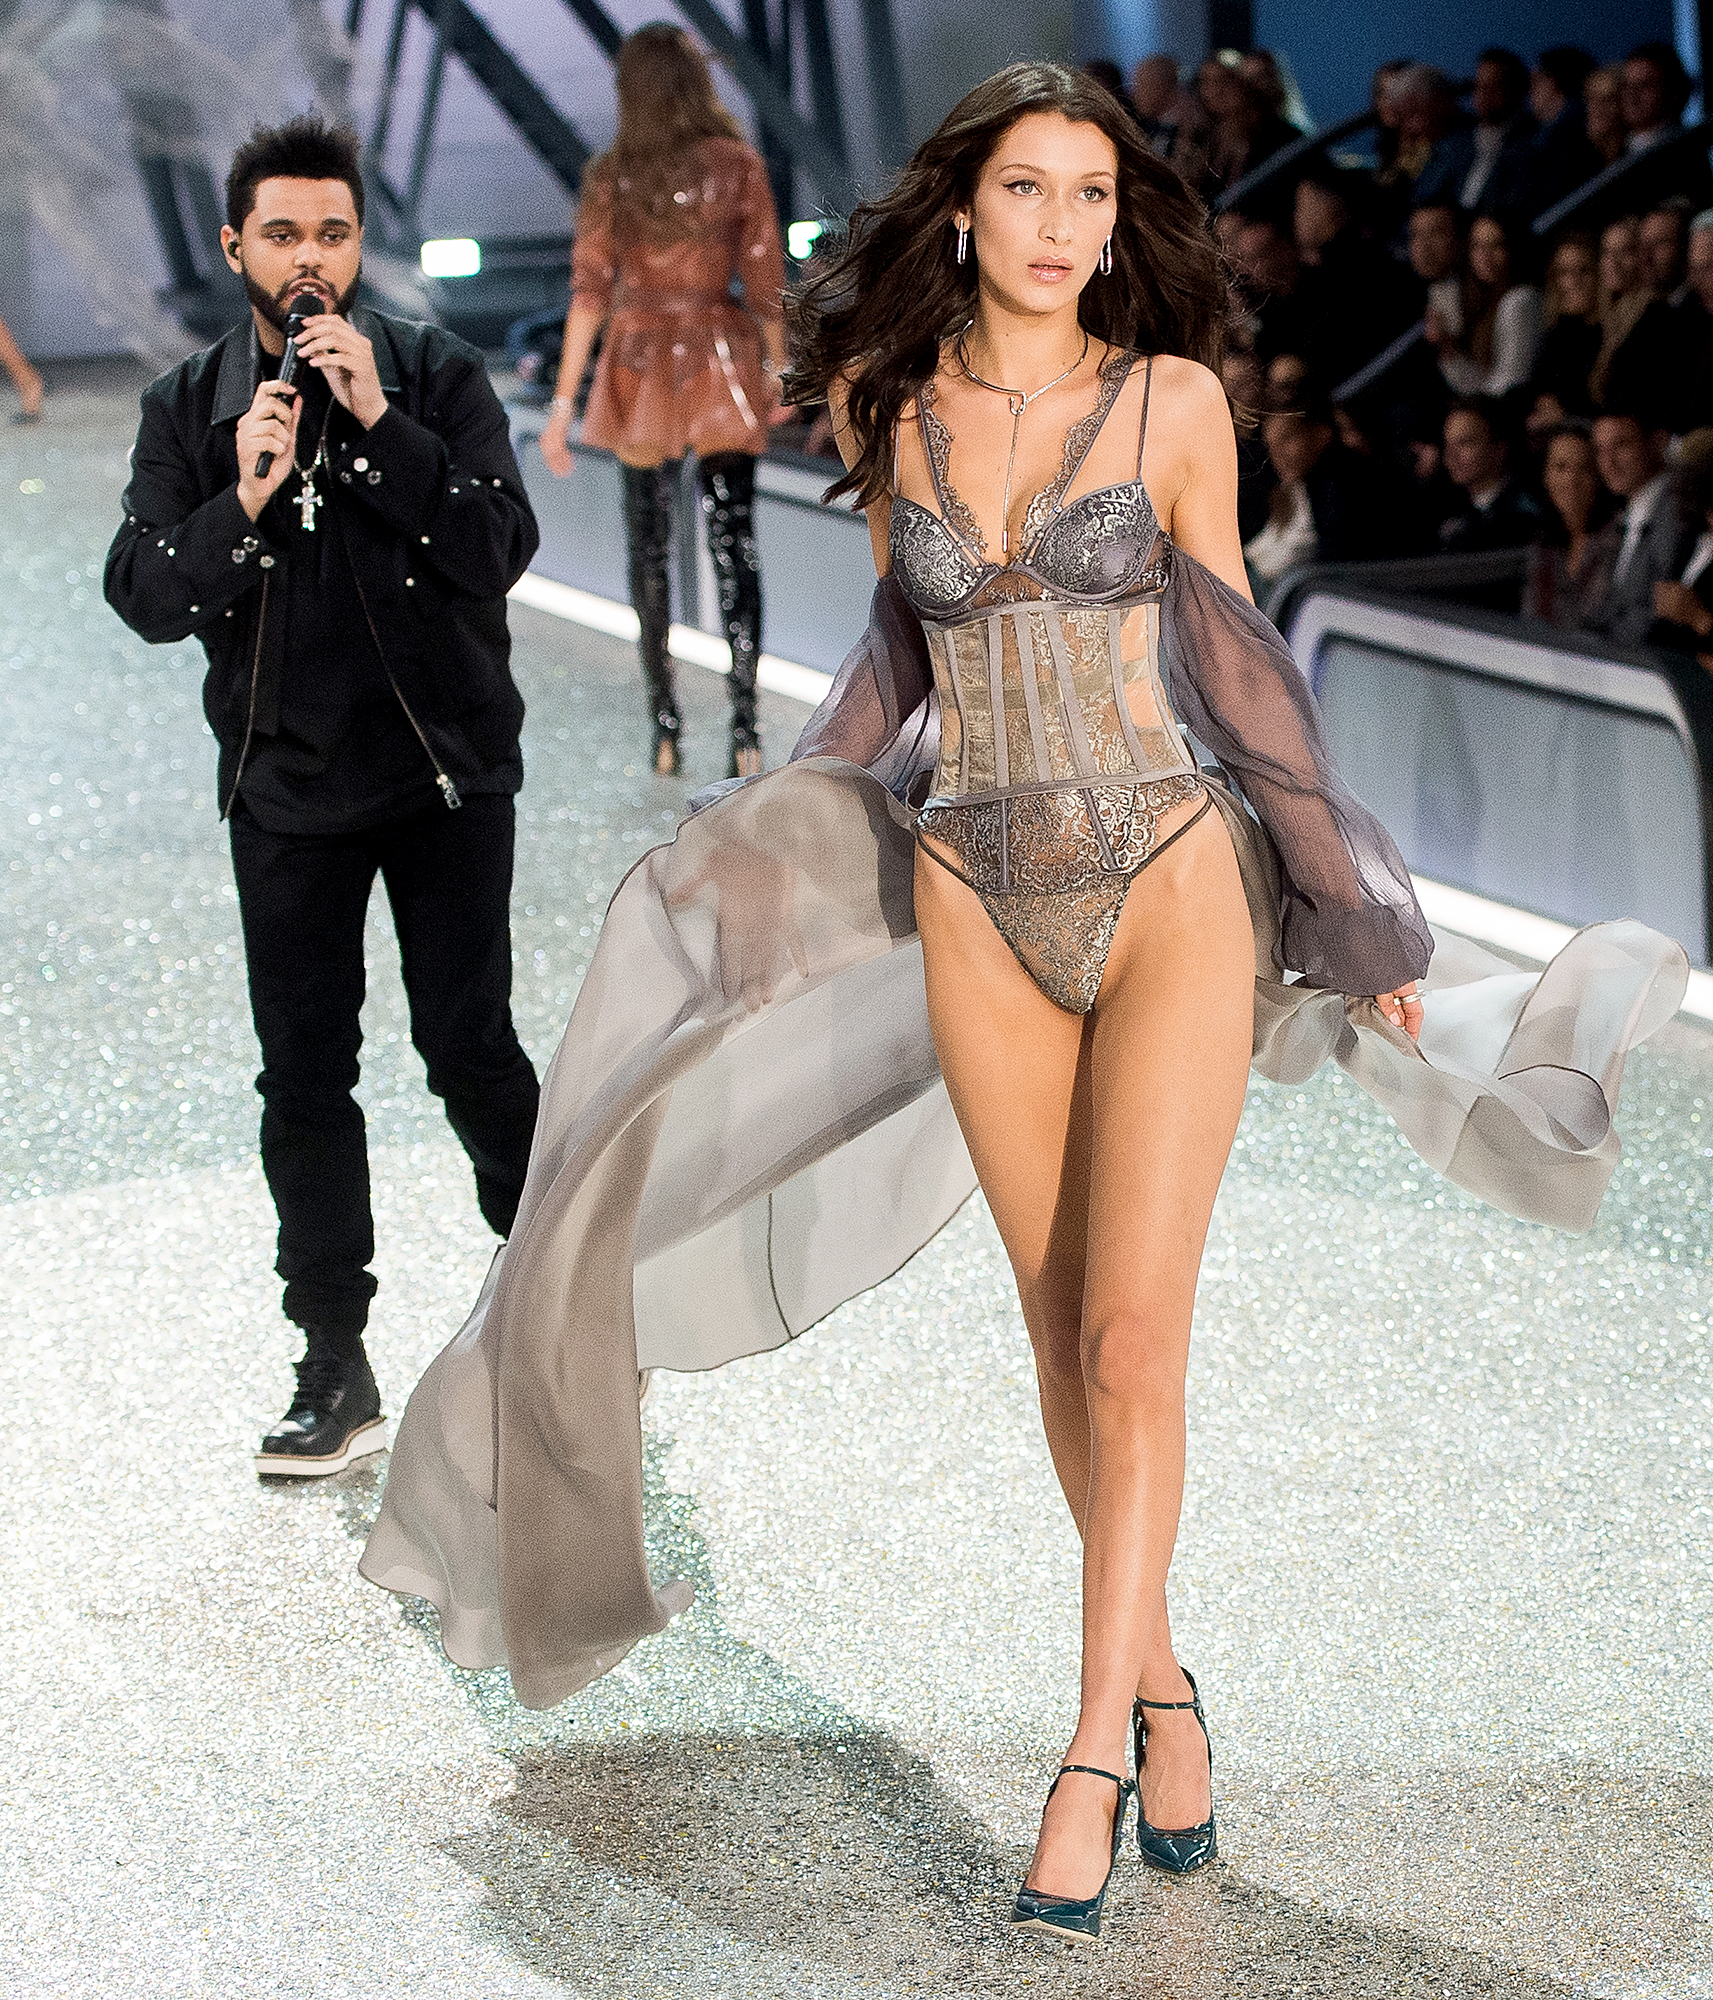 "3-Showing-Him-What-He's-Missing-bella-hadid-the-weeknd - Following their split, Hadid slayed the runway at the Victoria's Secret Fashion Show in Paris in November 2016 while The Weeknd performed. The pair remained professional, but the proof was in his set: the ""I Can't Feel My Face"" singer couldn't keep his eyes off his ex."